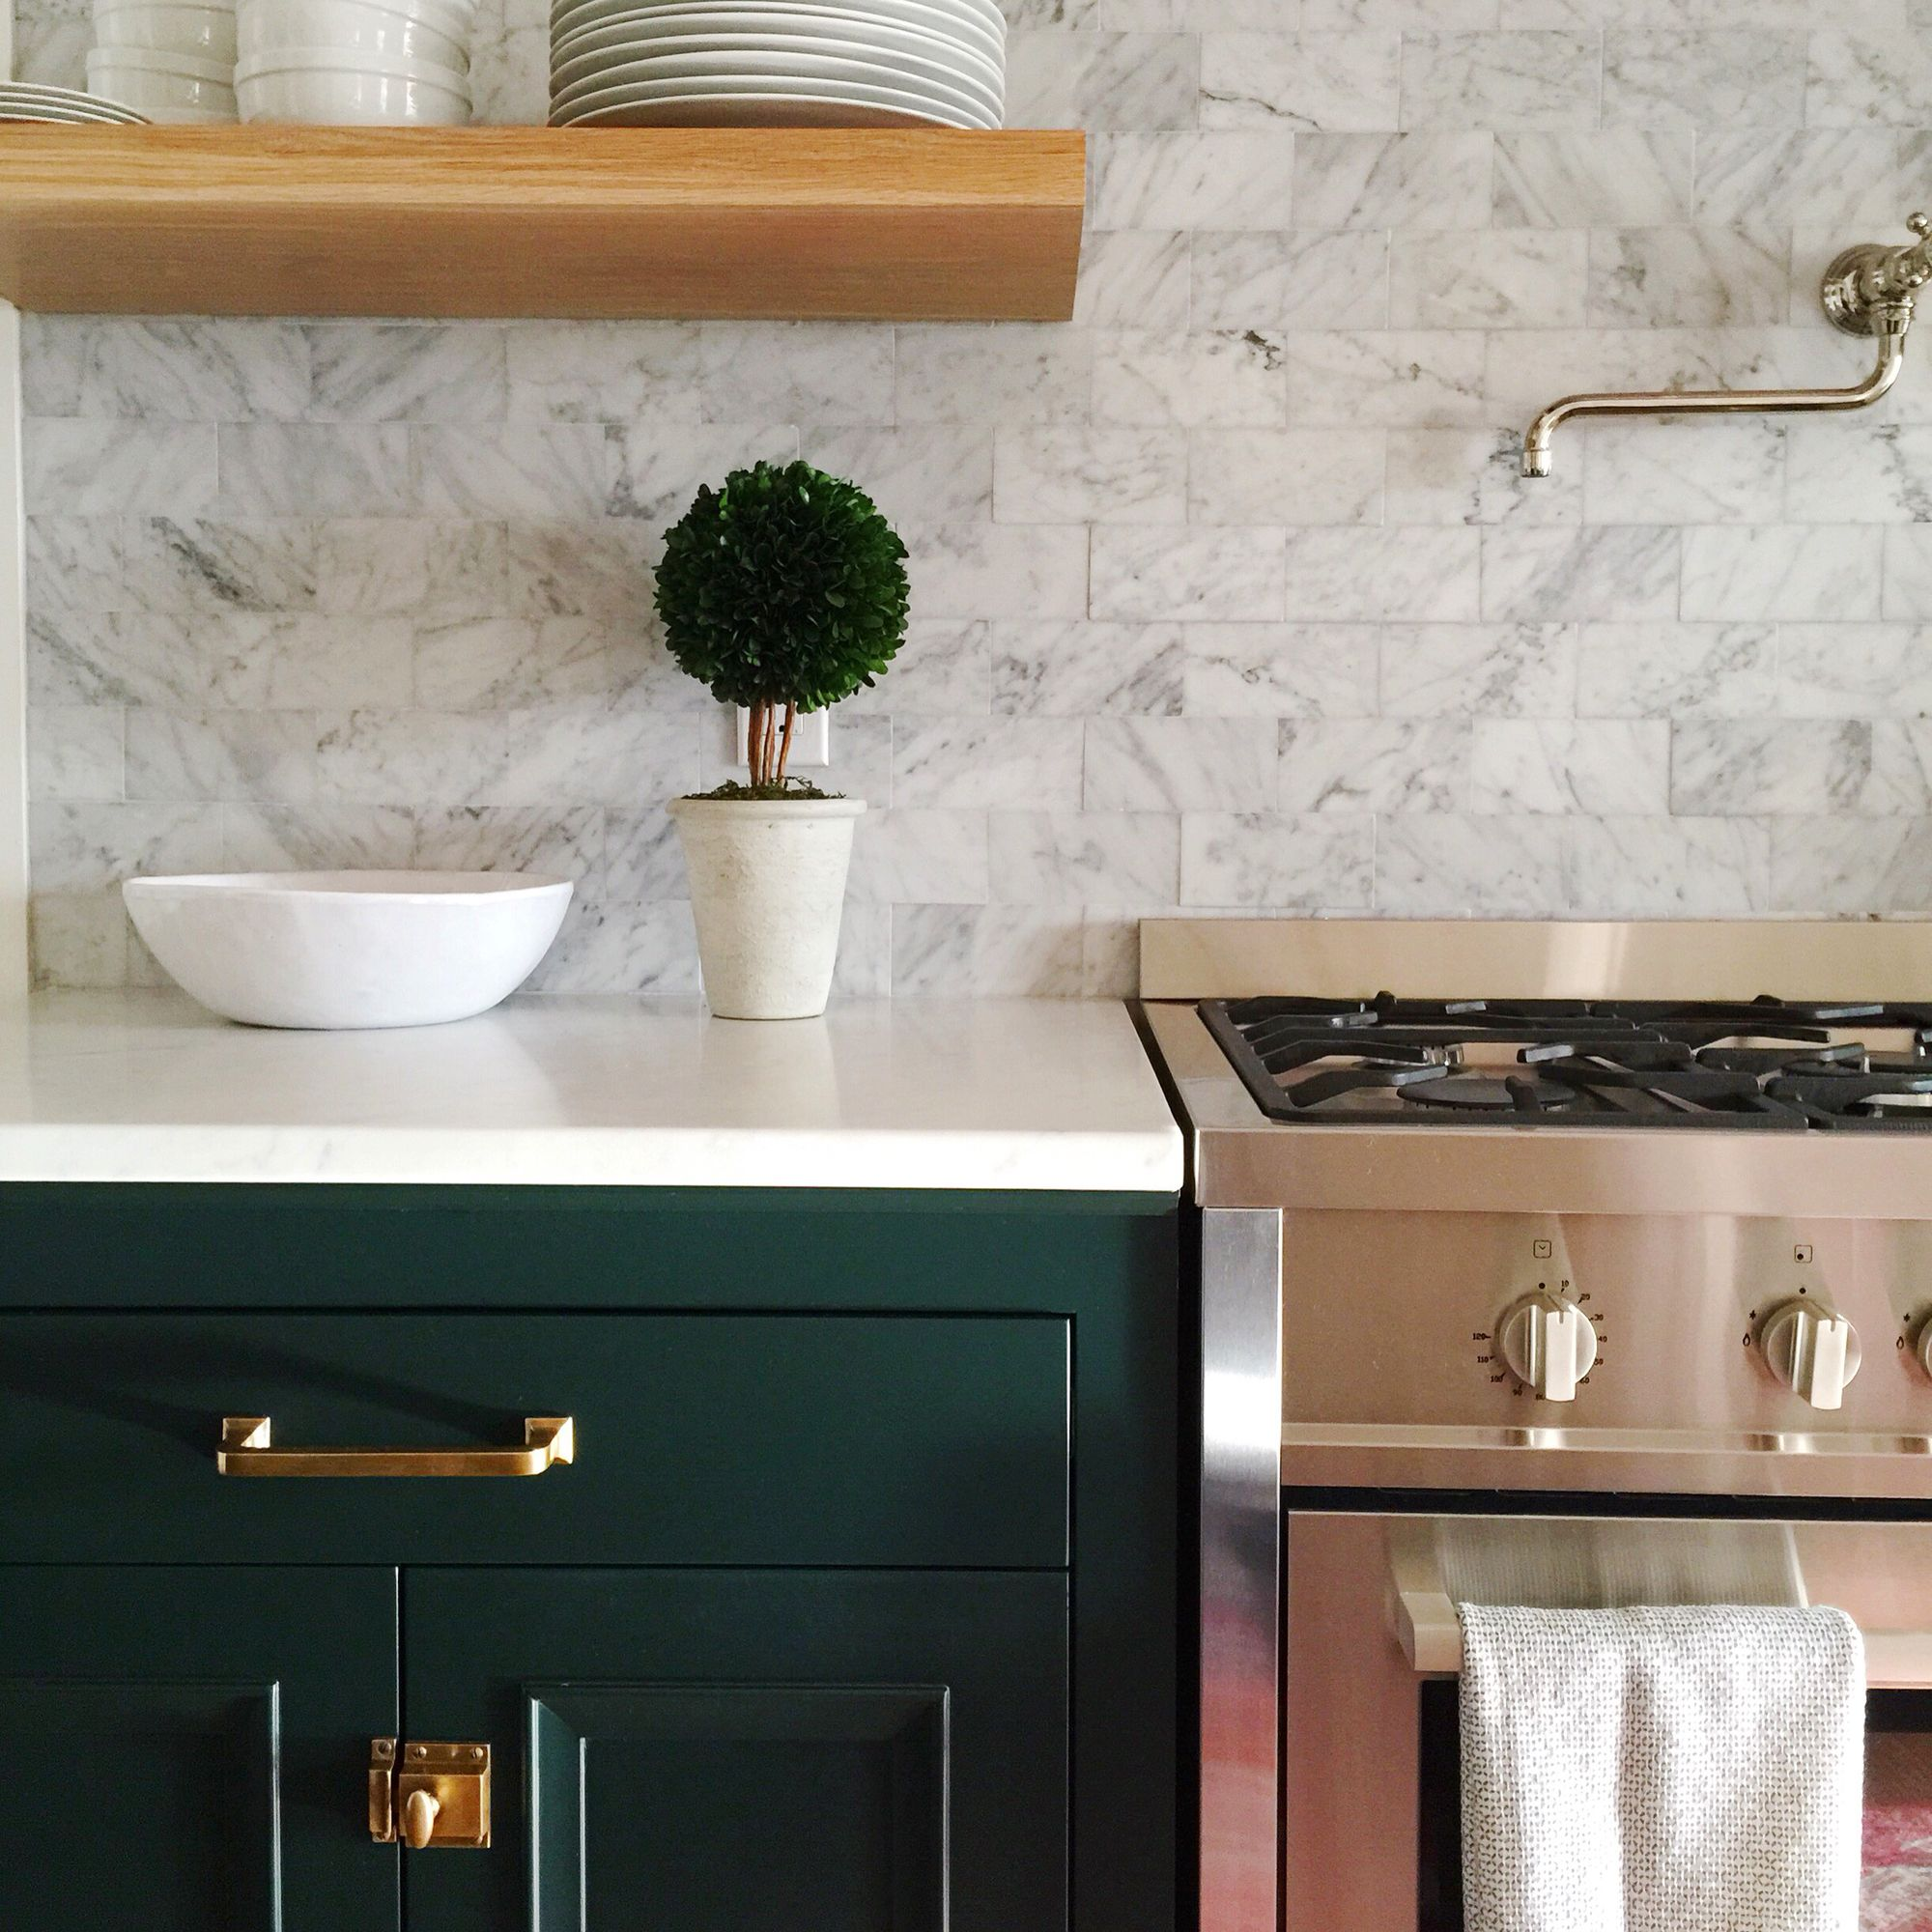 The Misfit House Renovation Black Forest Green Cabinets Benjamin Moore Mission Pulls And Oval Latches Rejuvenation Marble Subway Countertops